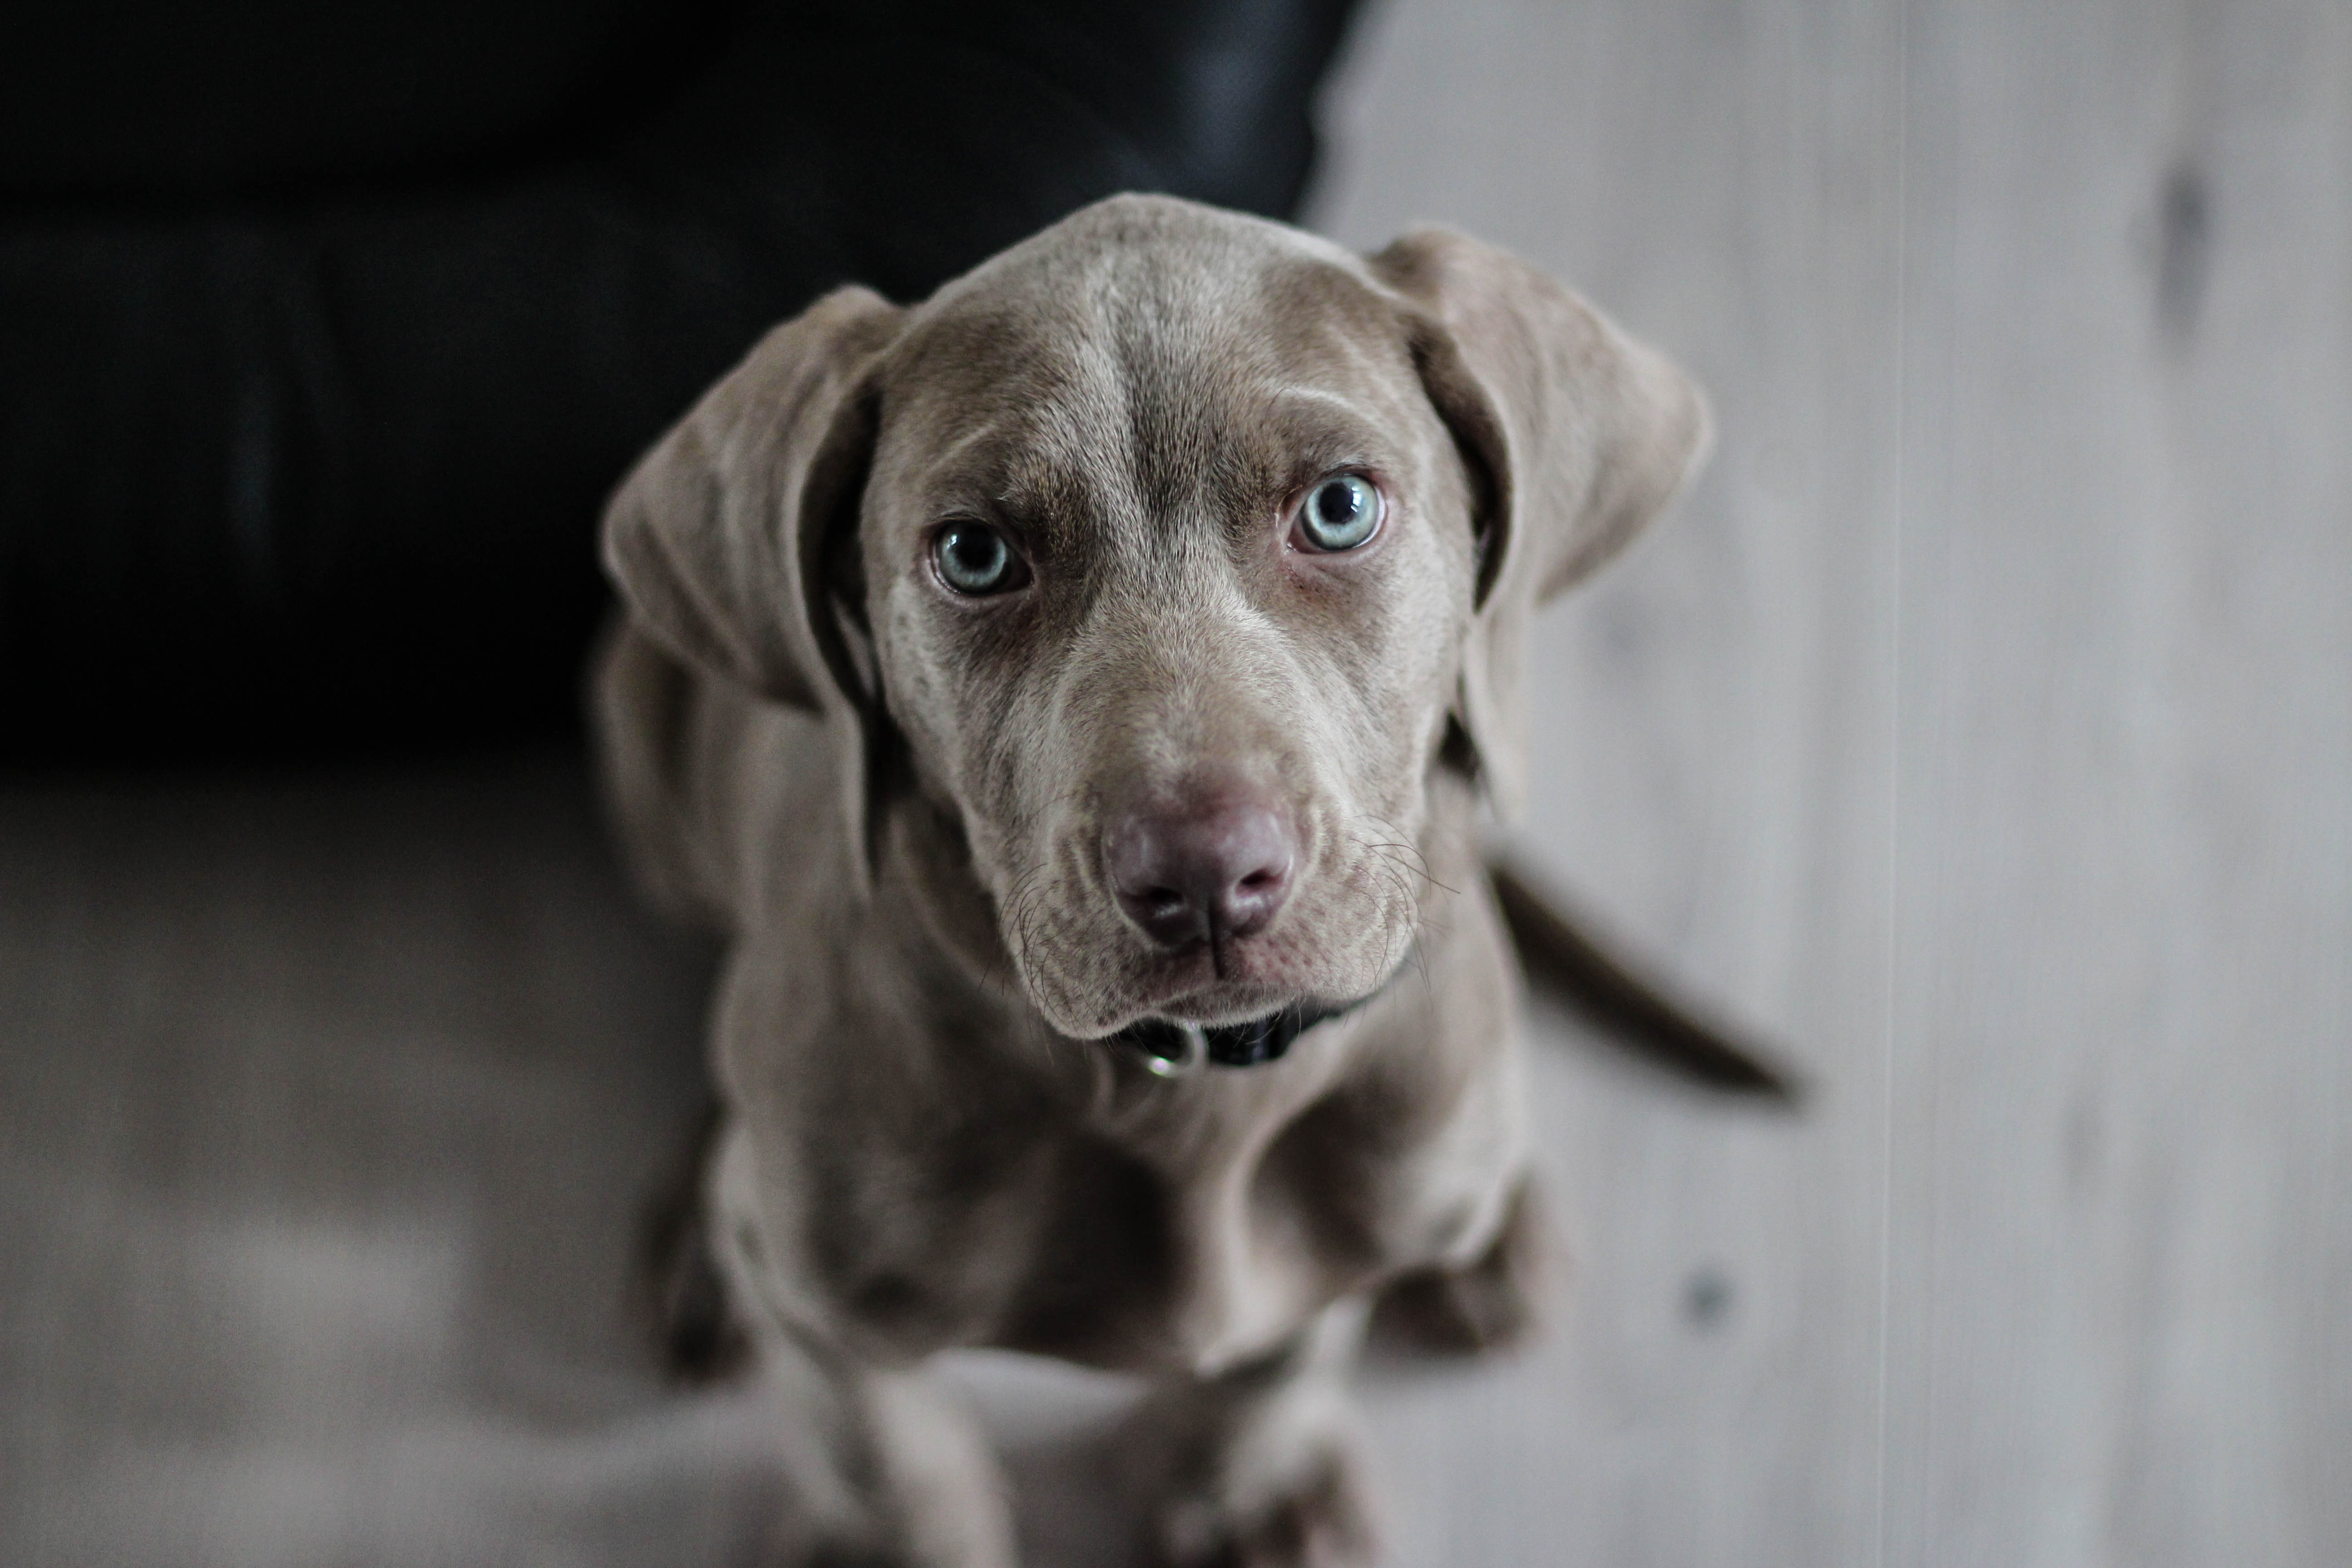 97678 download wallpaper Animals, Weimaraner, Dog, Muzzle, Eyes screensavers and pictures for free